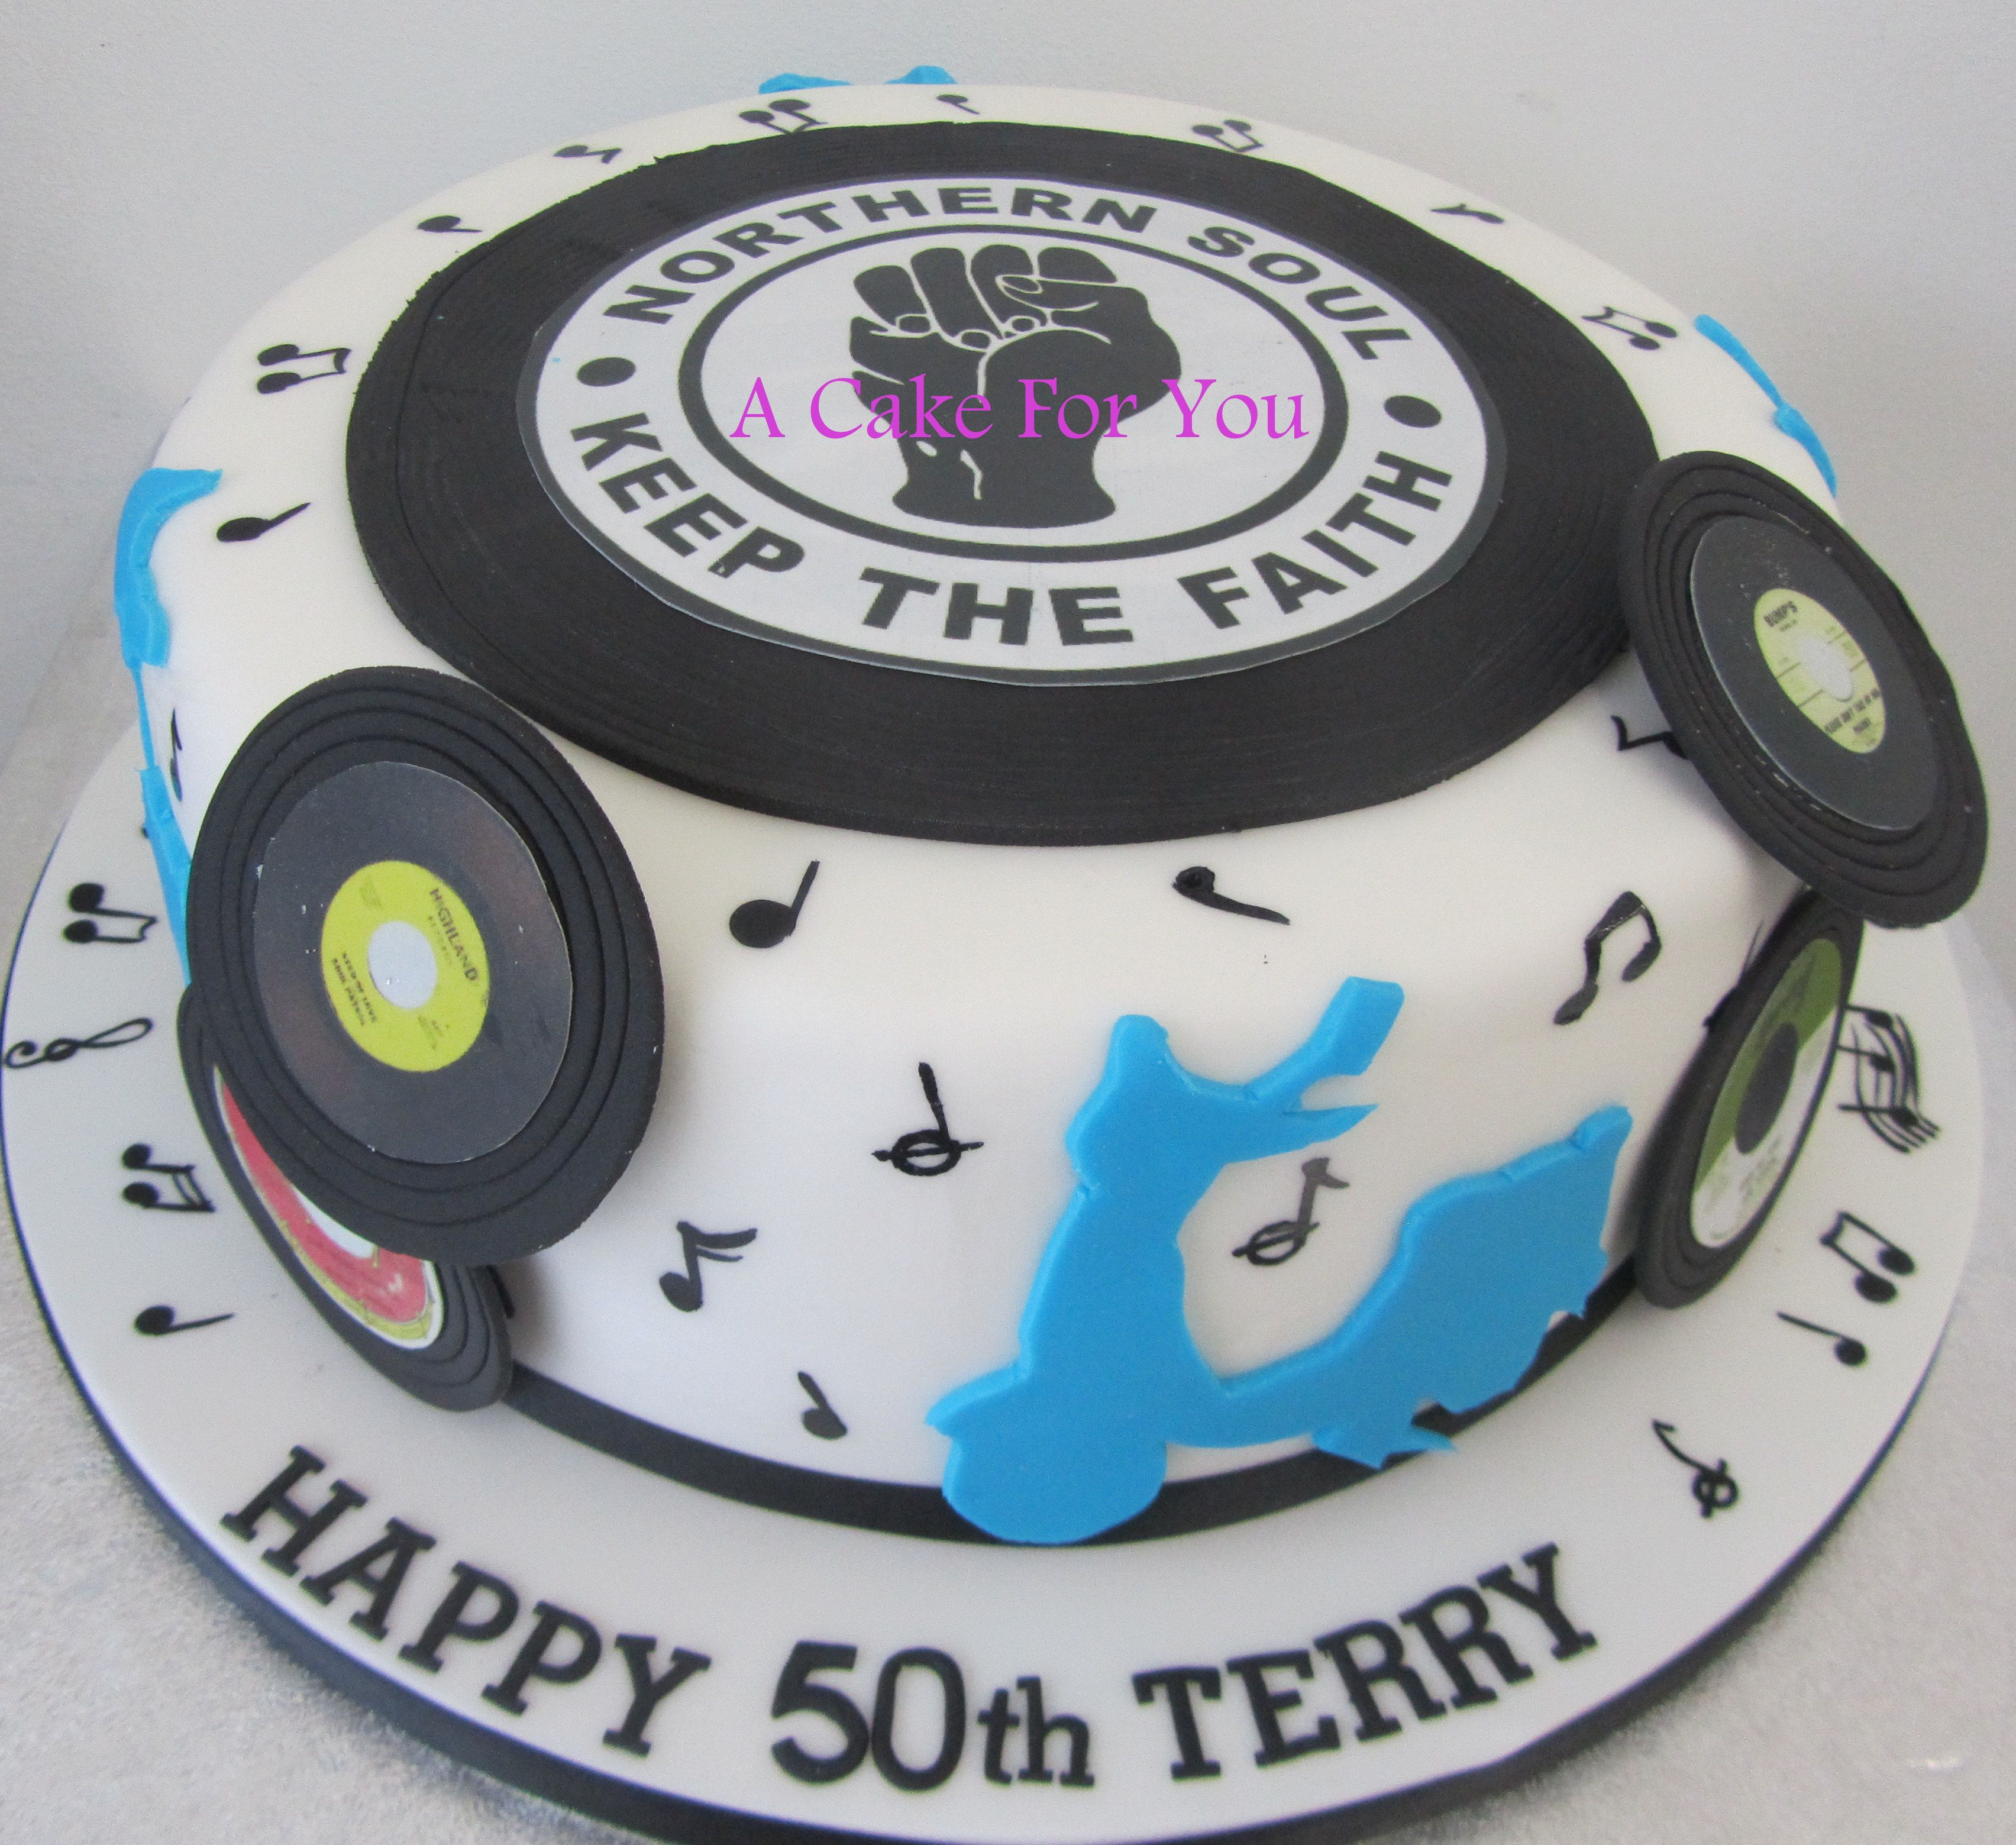 Northern Soul Cake For Terry's 50th Birthday